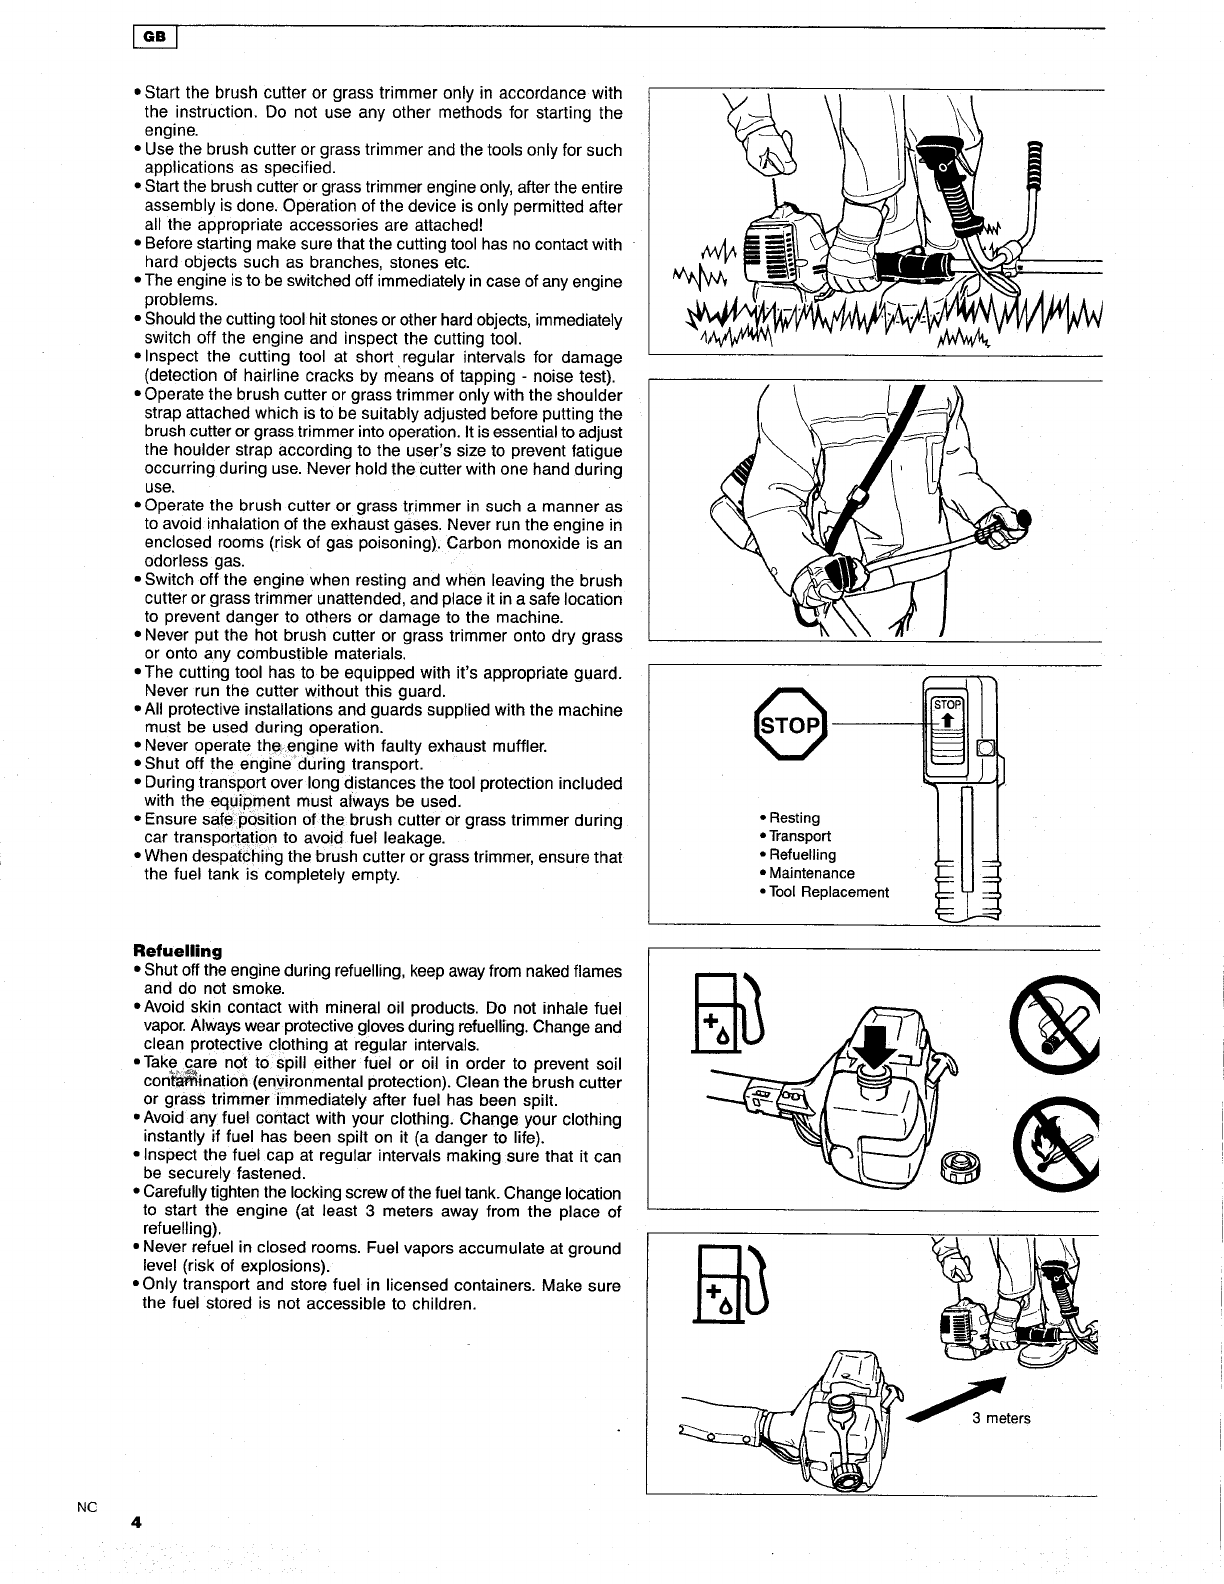 Page 4 of Makita Brush Cutter RBC251 User Guide